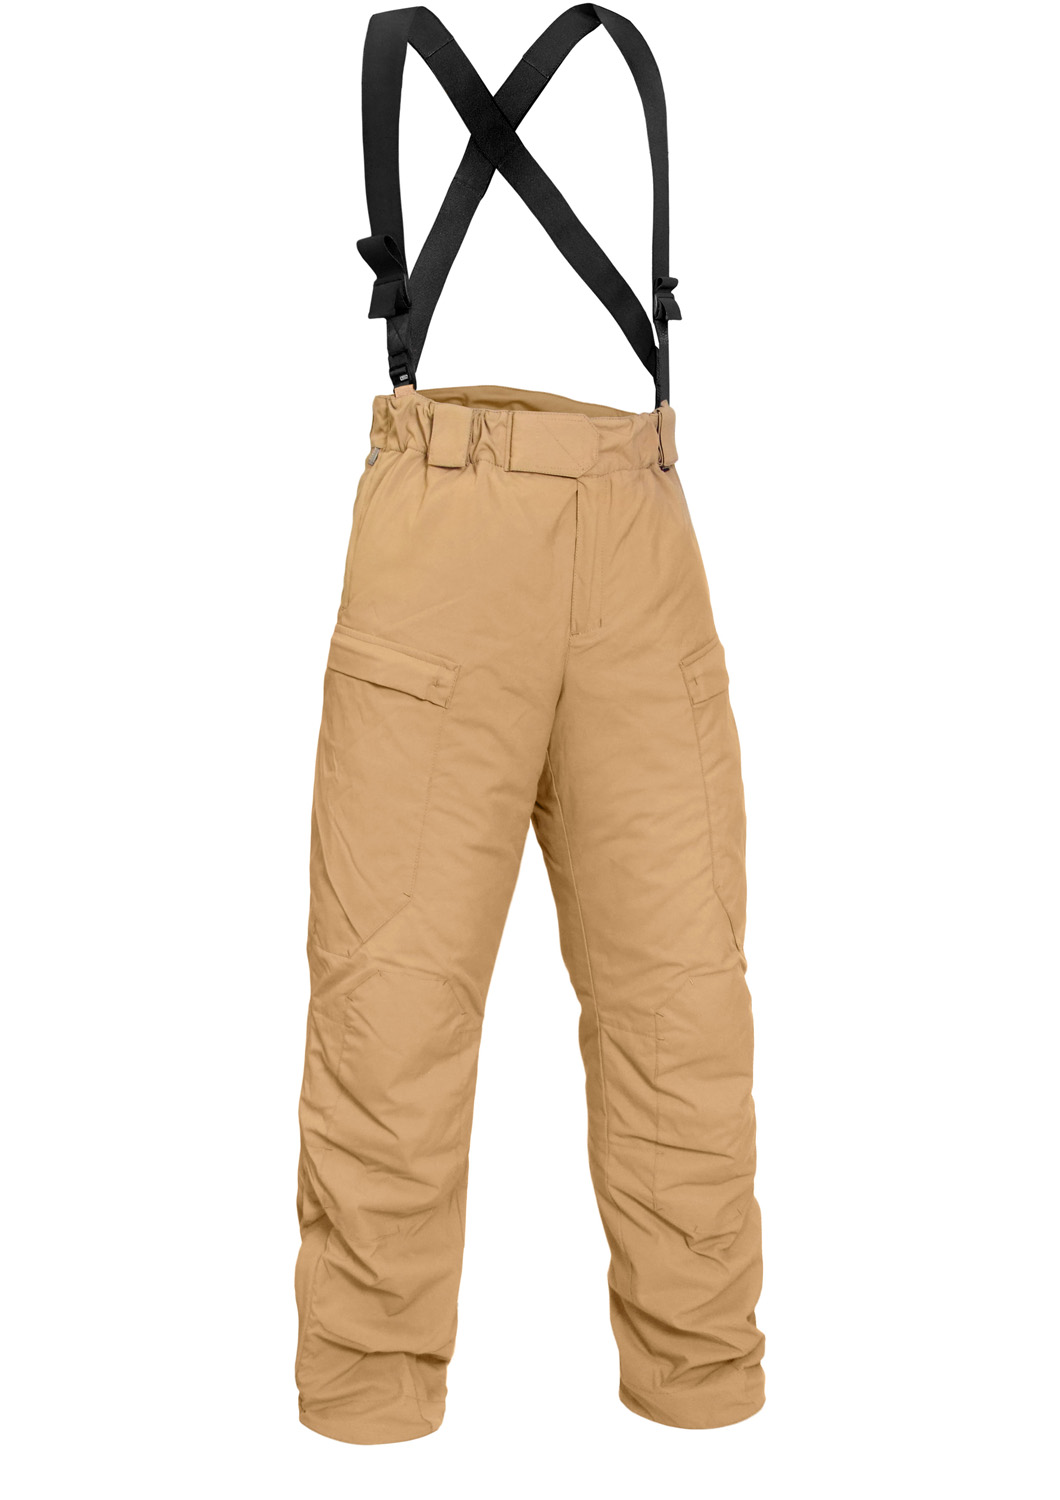 Field winter pants